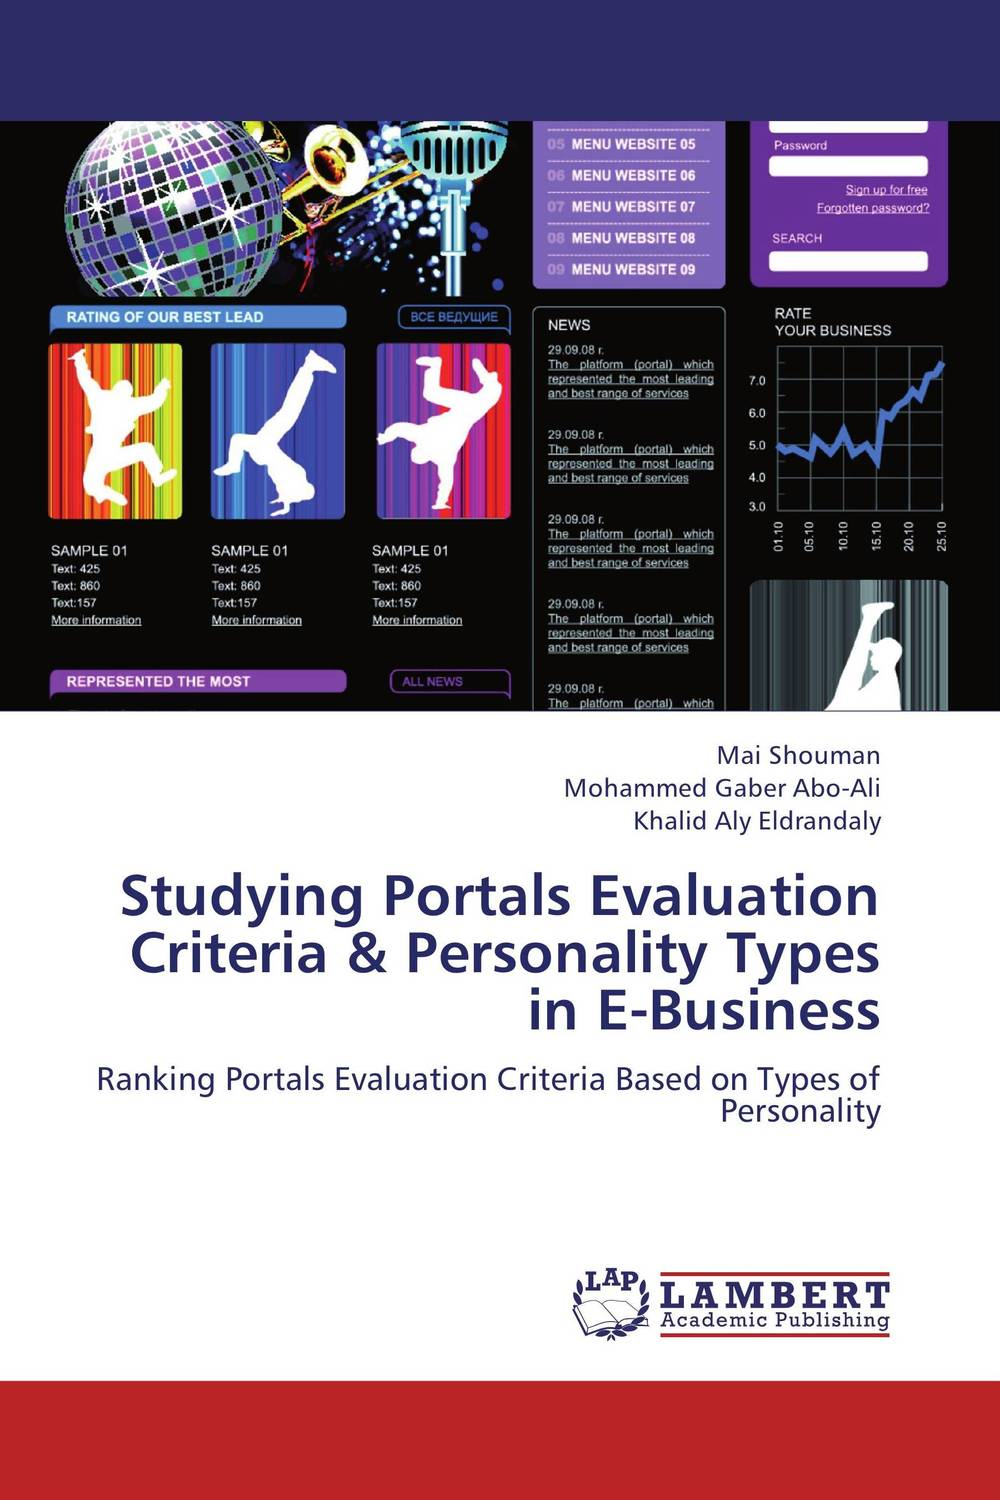 Studying Portals Evaluation Criteria & Personality Types in E-Business